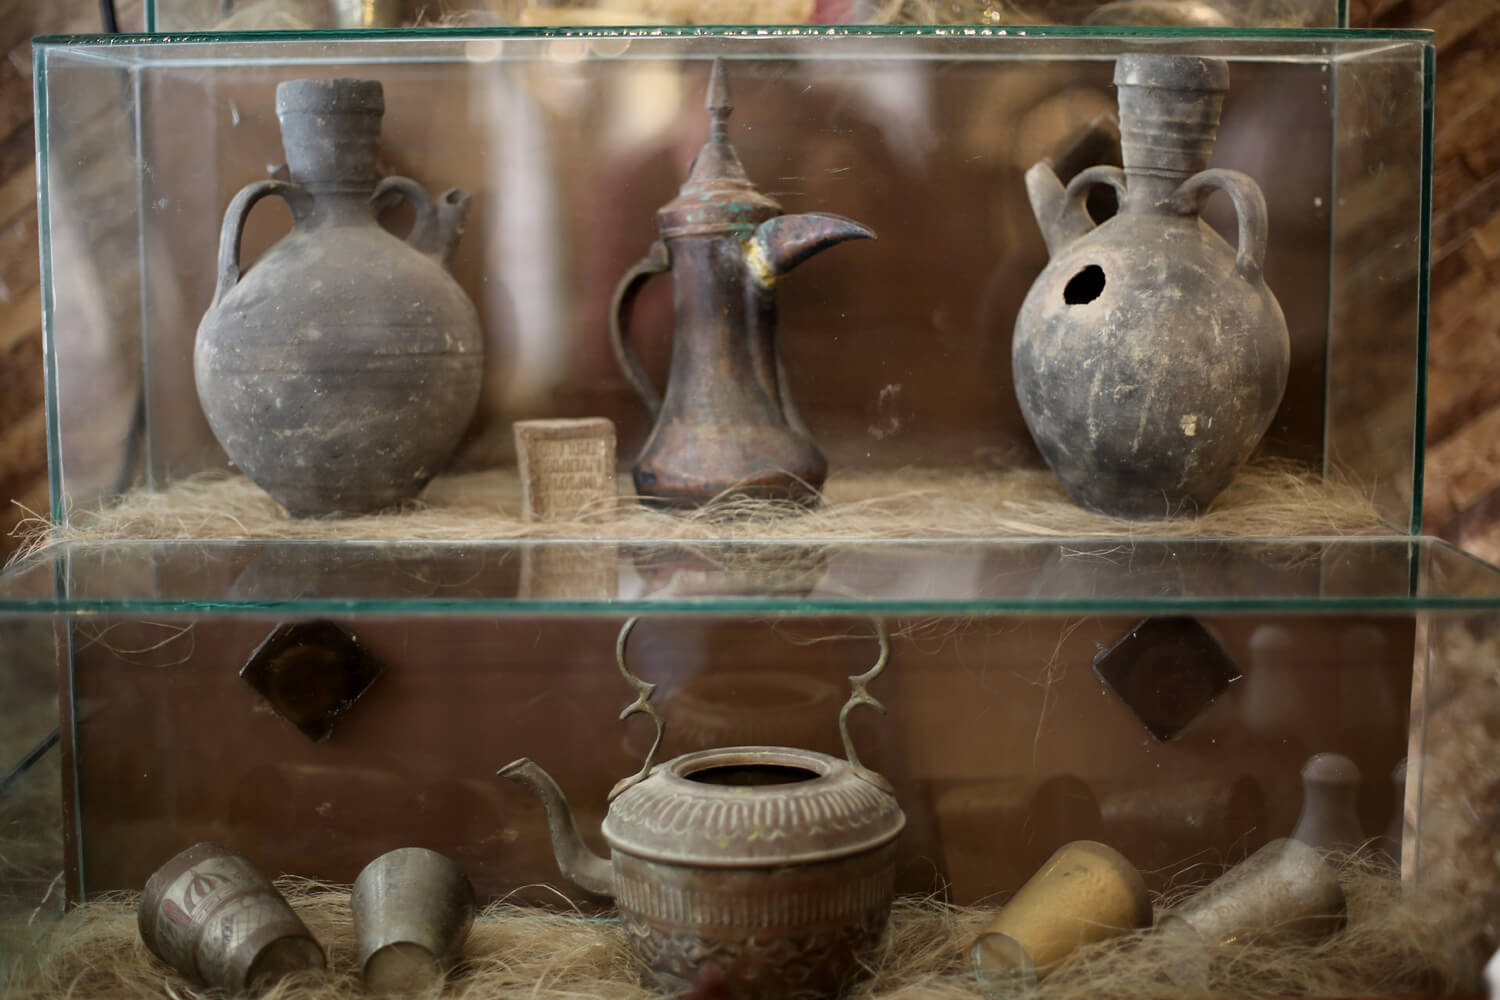 Ancient pottery displayed in the old restaurant in Aleppo was brought to Gaza. (Photo: Mohammed Asad)